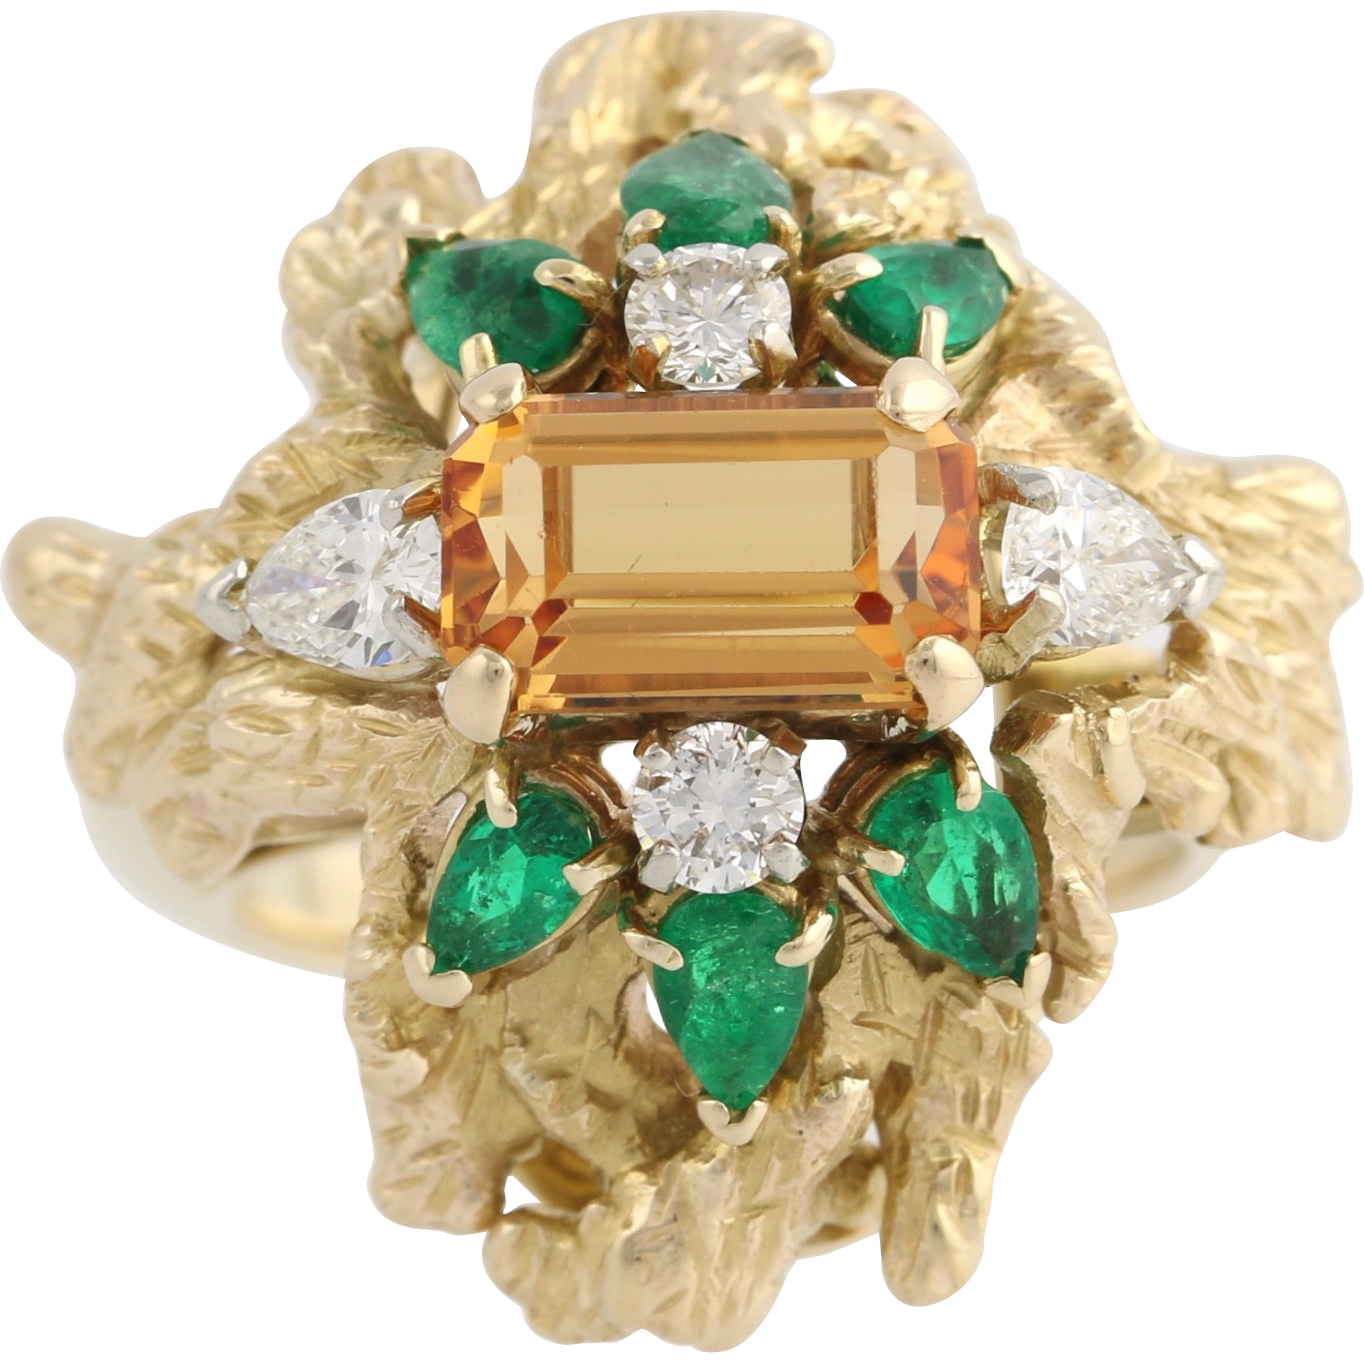 Topaz Emerald & Diamond Cocktail Ring - 14k Yellow Gold Women's Natural Precious